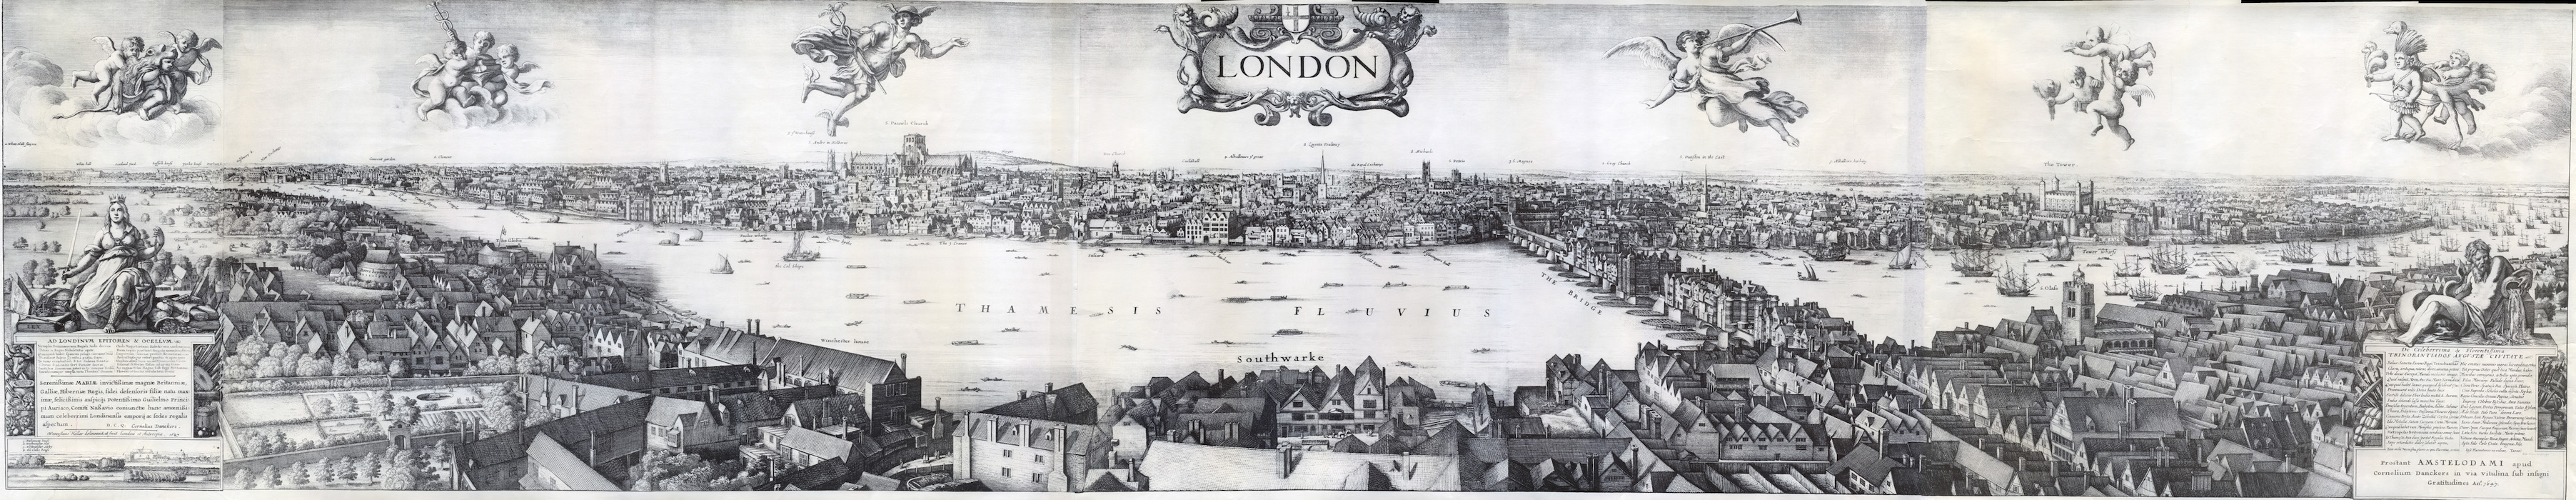 1647_Long_view_of_London_From_Bankside_-_Wenceslaus_Hollar 700px high